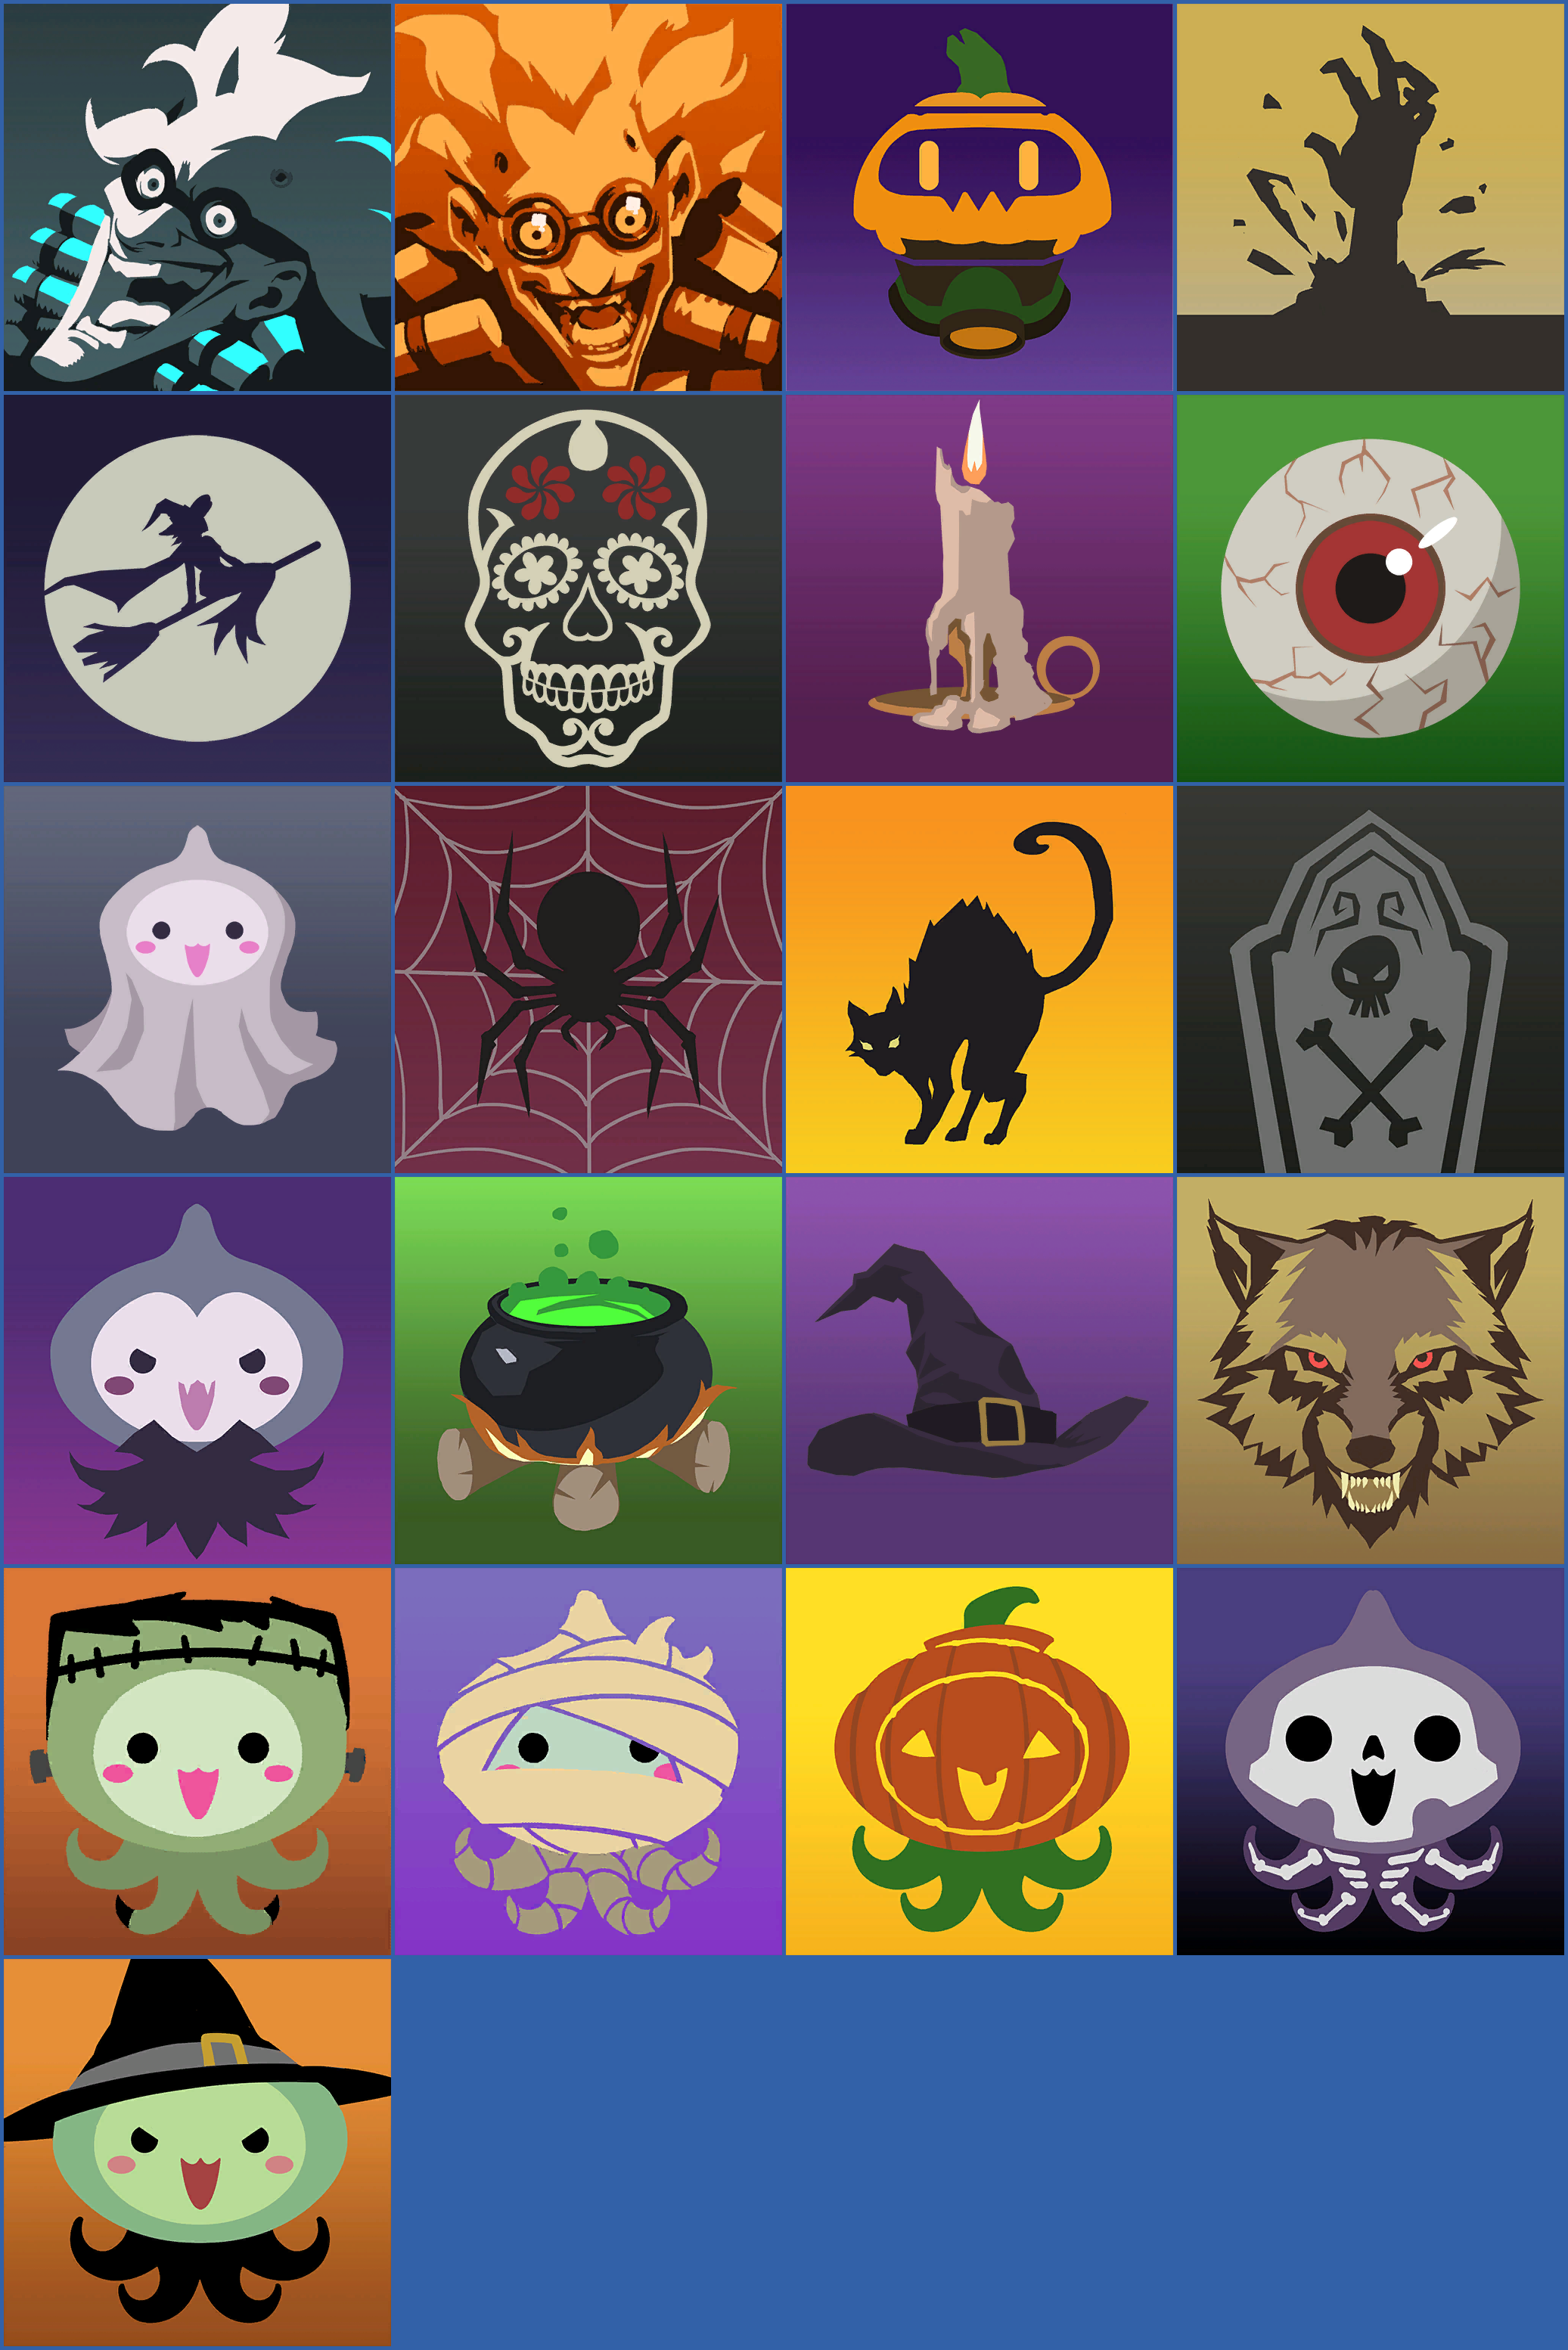 Overwatch Halloween 2020 Player Icons The Spriters Resource   Full Sheet View   Overwatch   Halloween